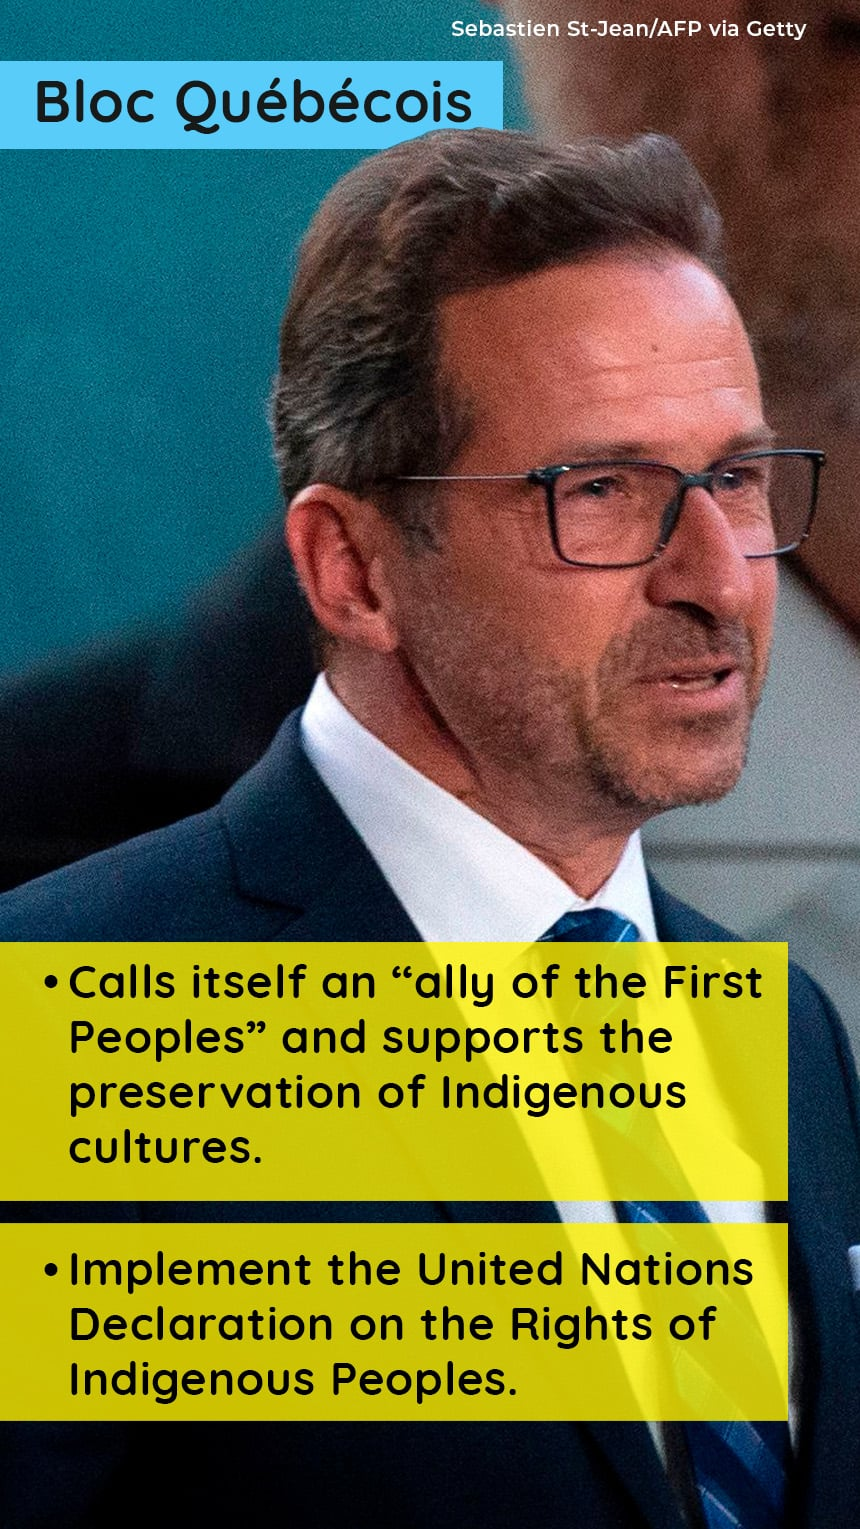 """An image of Yves-Francois Blanchet with text that says, BLOC QUEBECOIS, Calls itself an """"ally of the First Peoples"""" and supports the preservation of Indigenous cultures, Implement the UN Declaration on the Rights of Indigenous Peoples."""